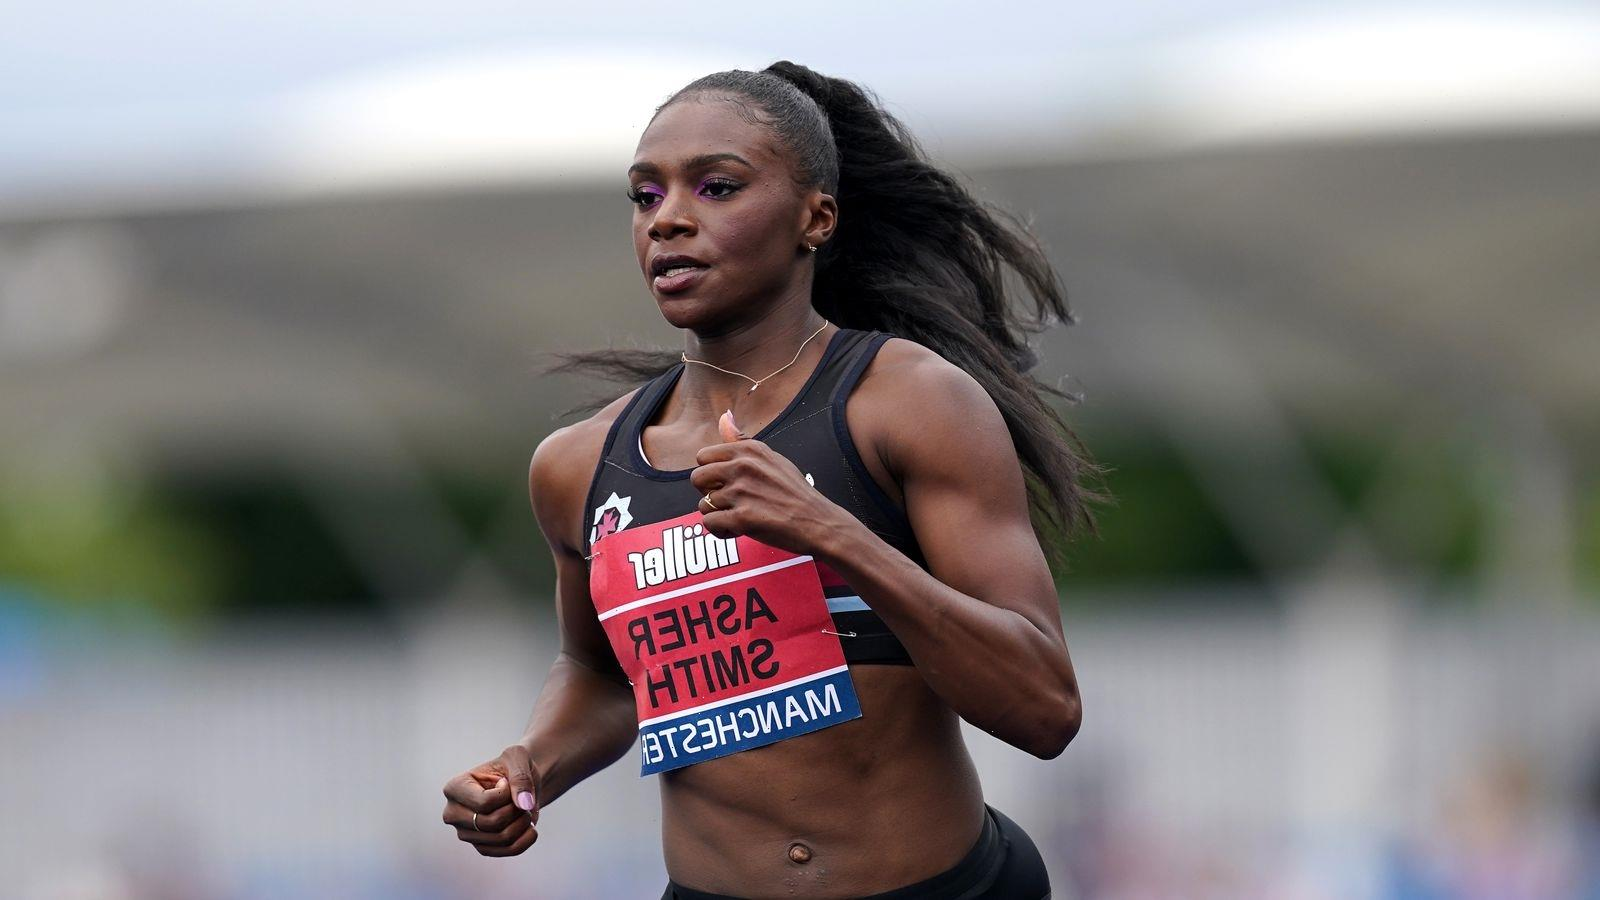 Dina Asher-Smith tells Gary Neville about the 'adrenaline rush' of racing, Tokyo 2020 and the fight to tackle racism